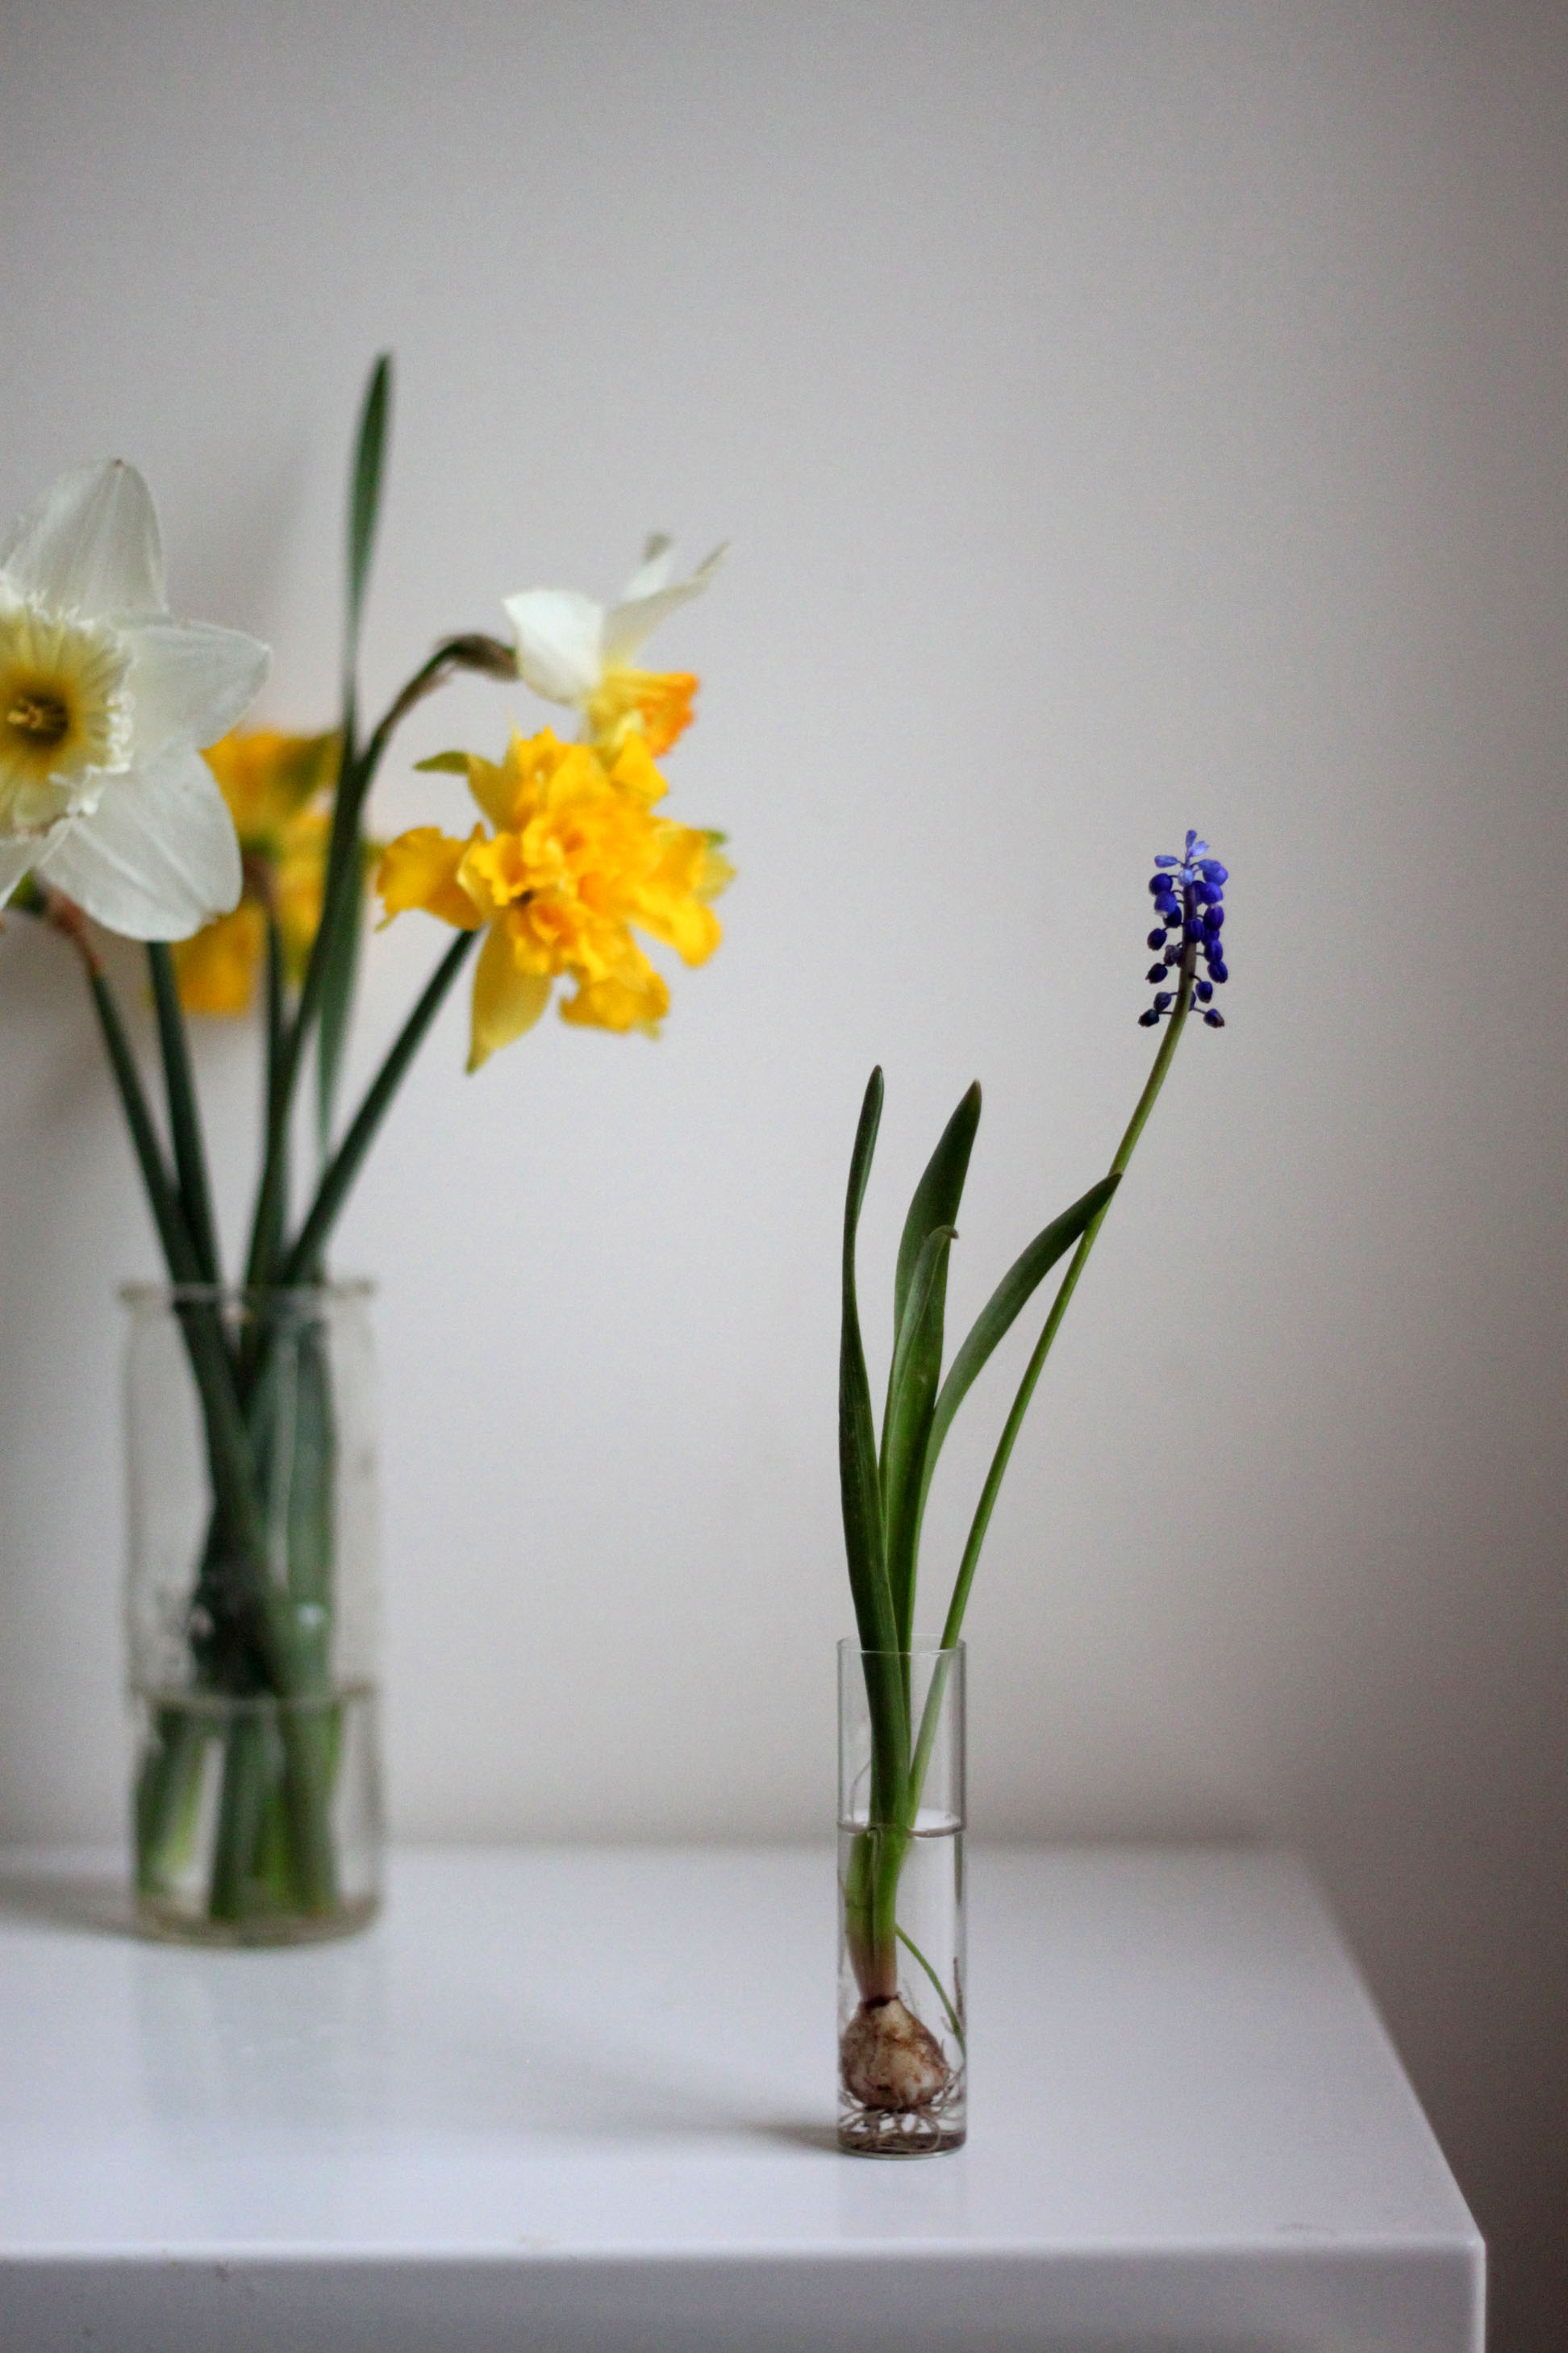 grape hyacinth and daffodils